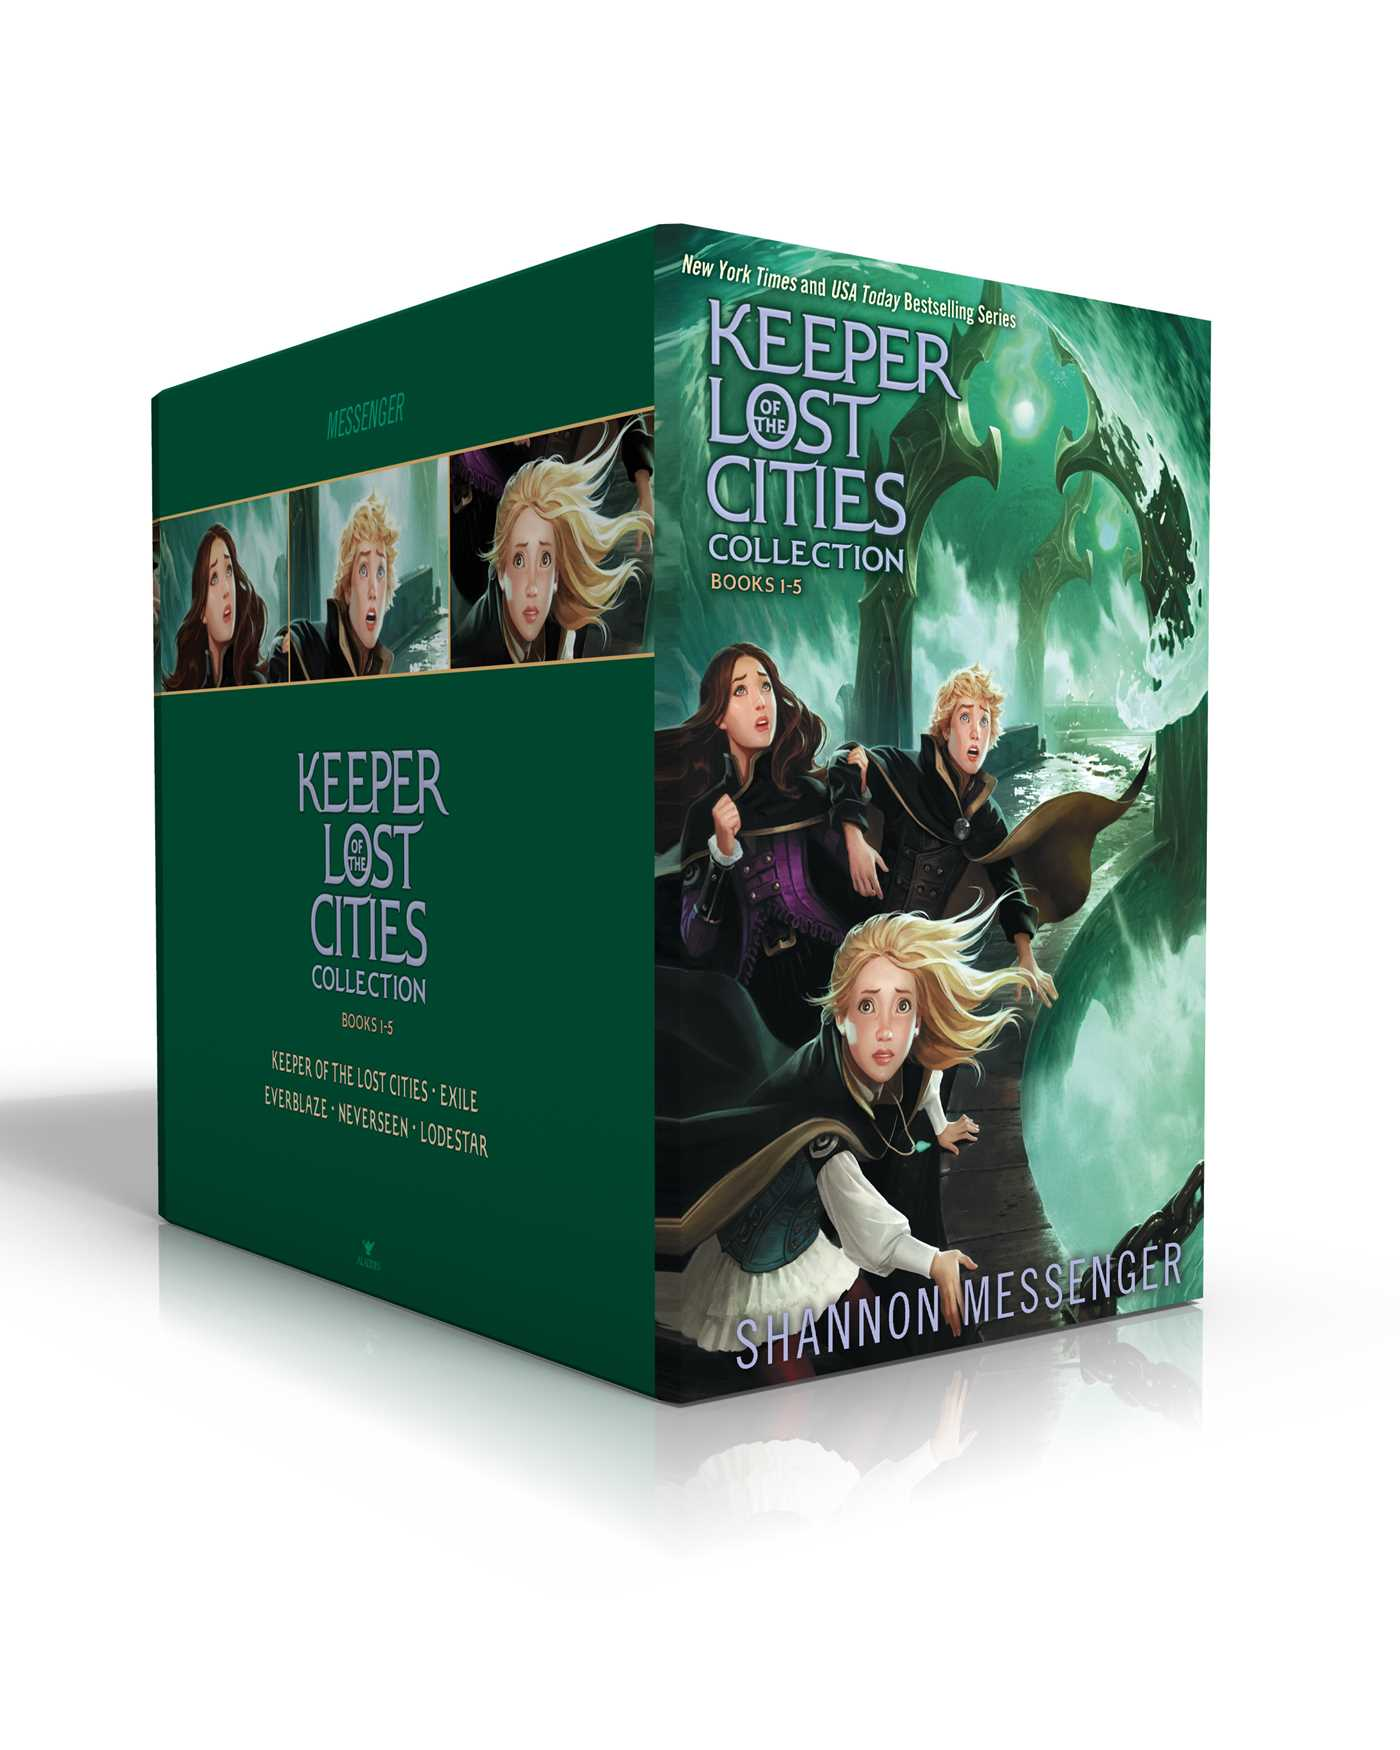 Keeper of the lost cities collection books 1 5 9781534428508 hr